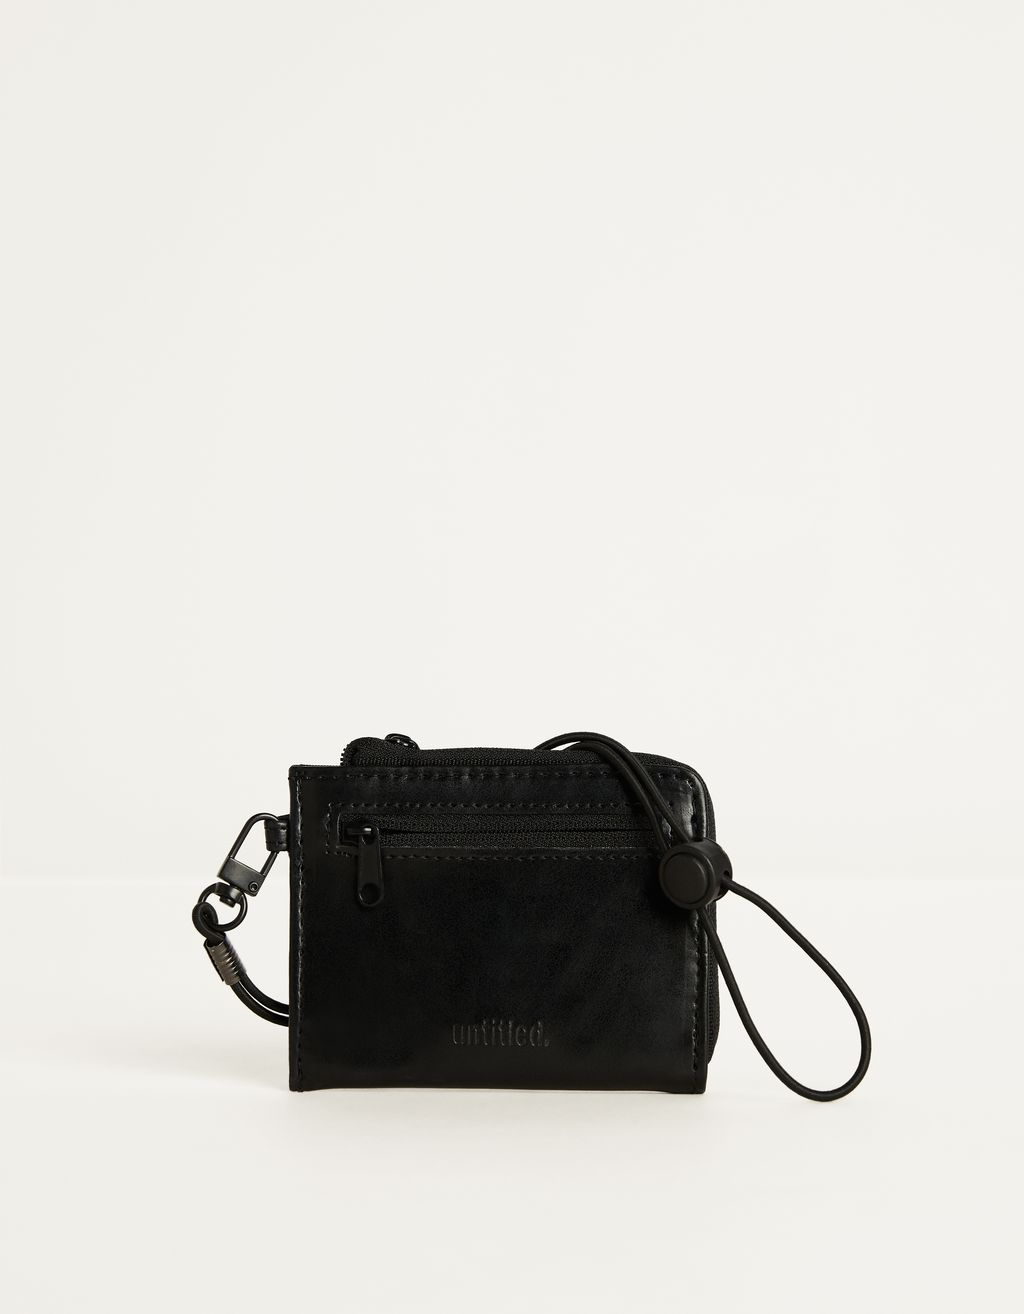 Purse with strap